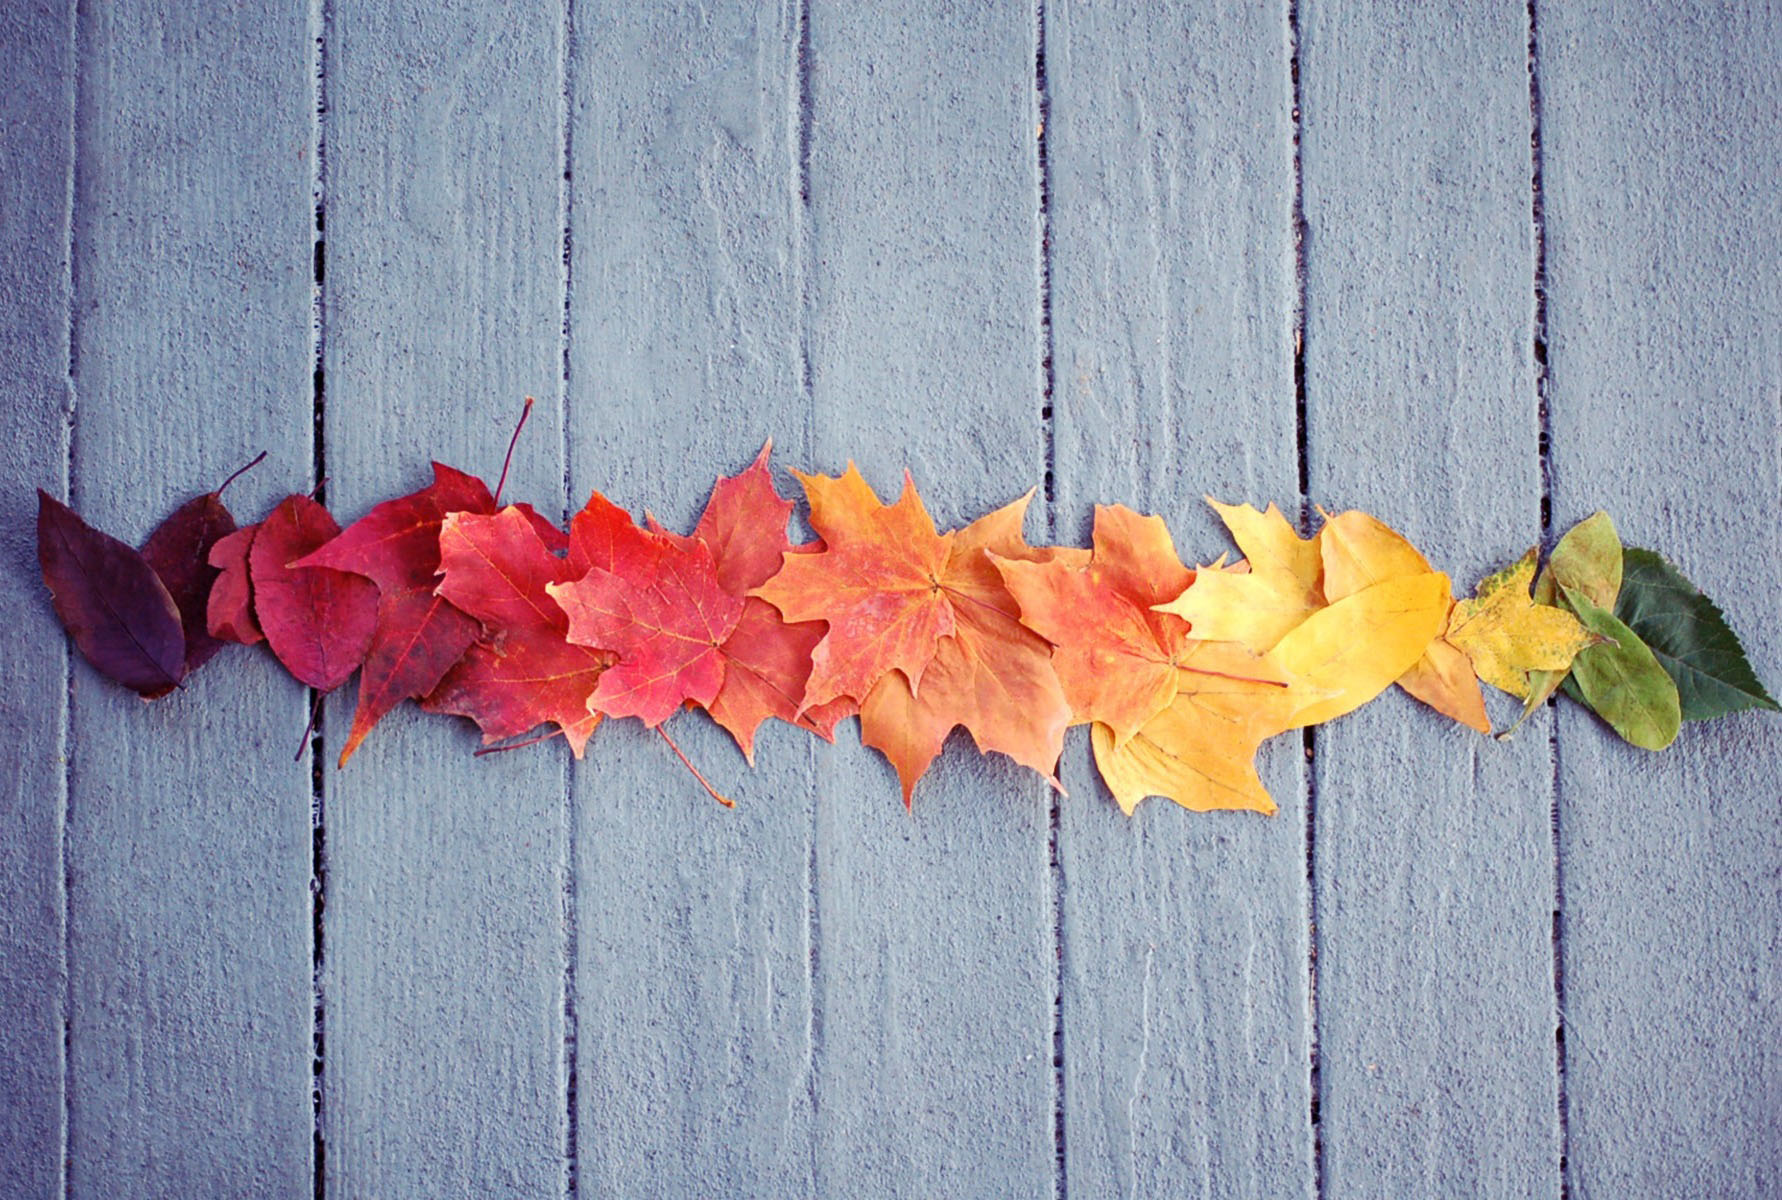 Abbie Miller's photograph of multicolored leaves